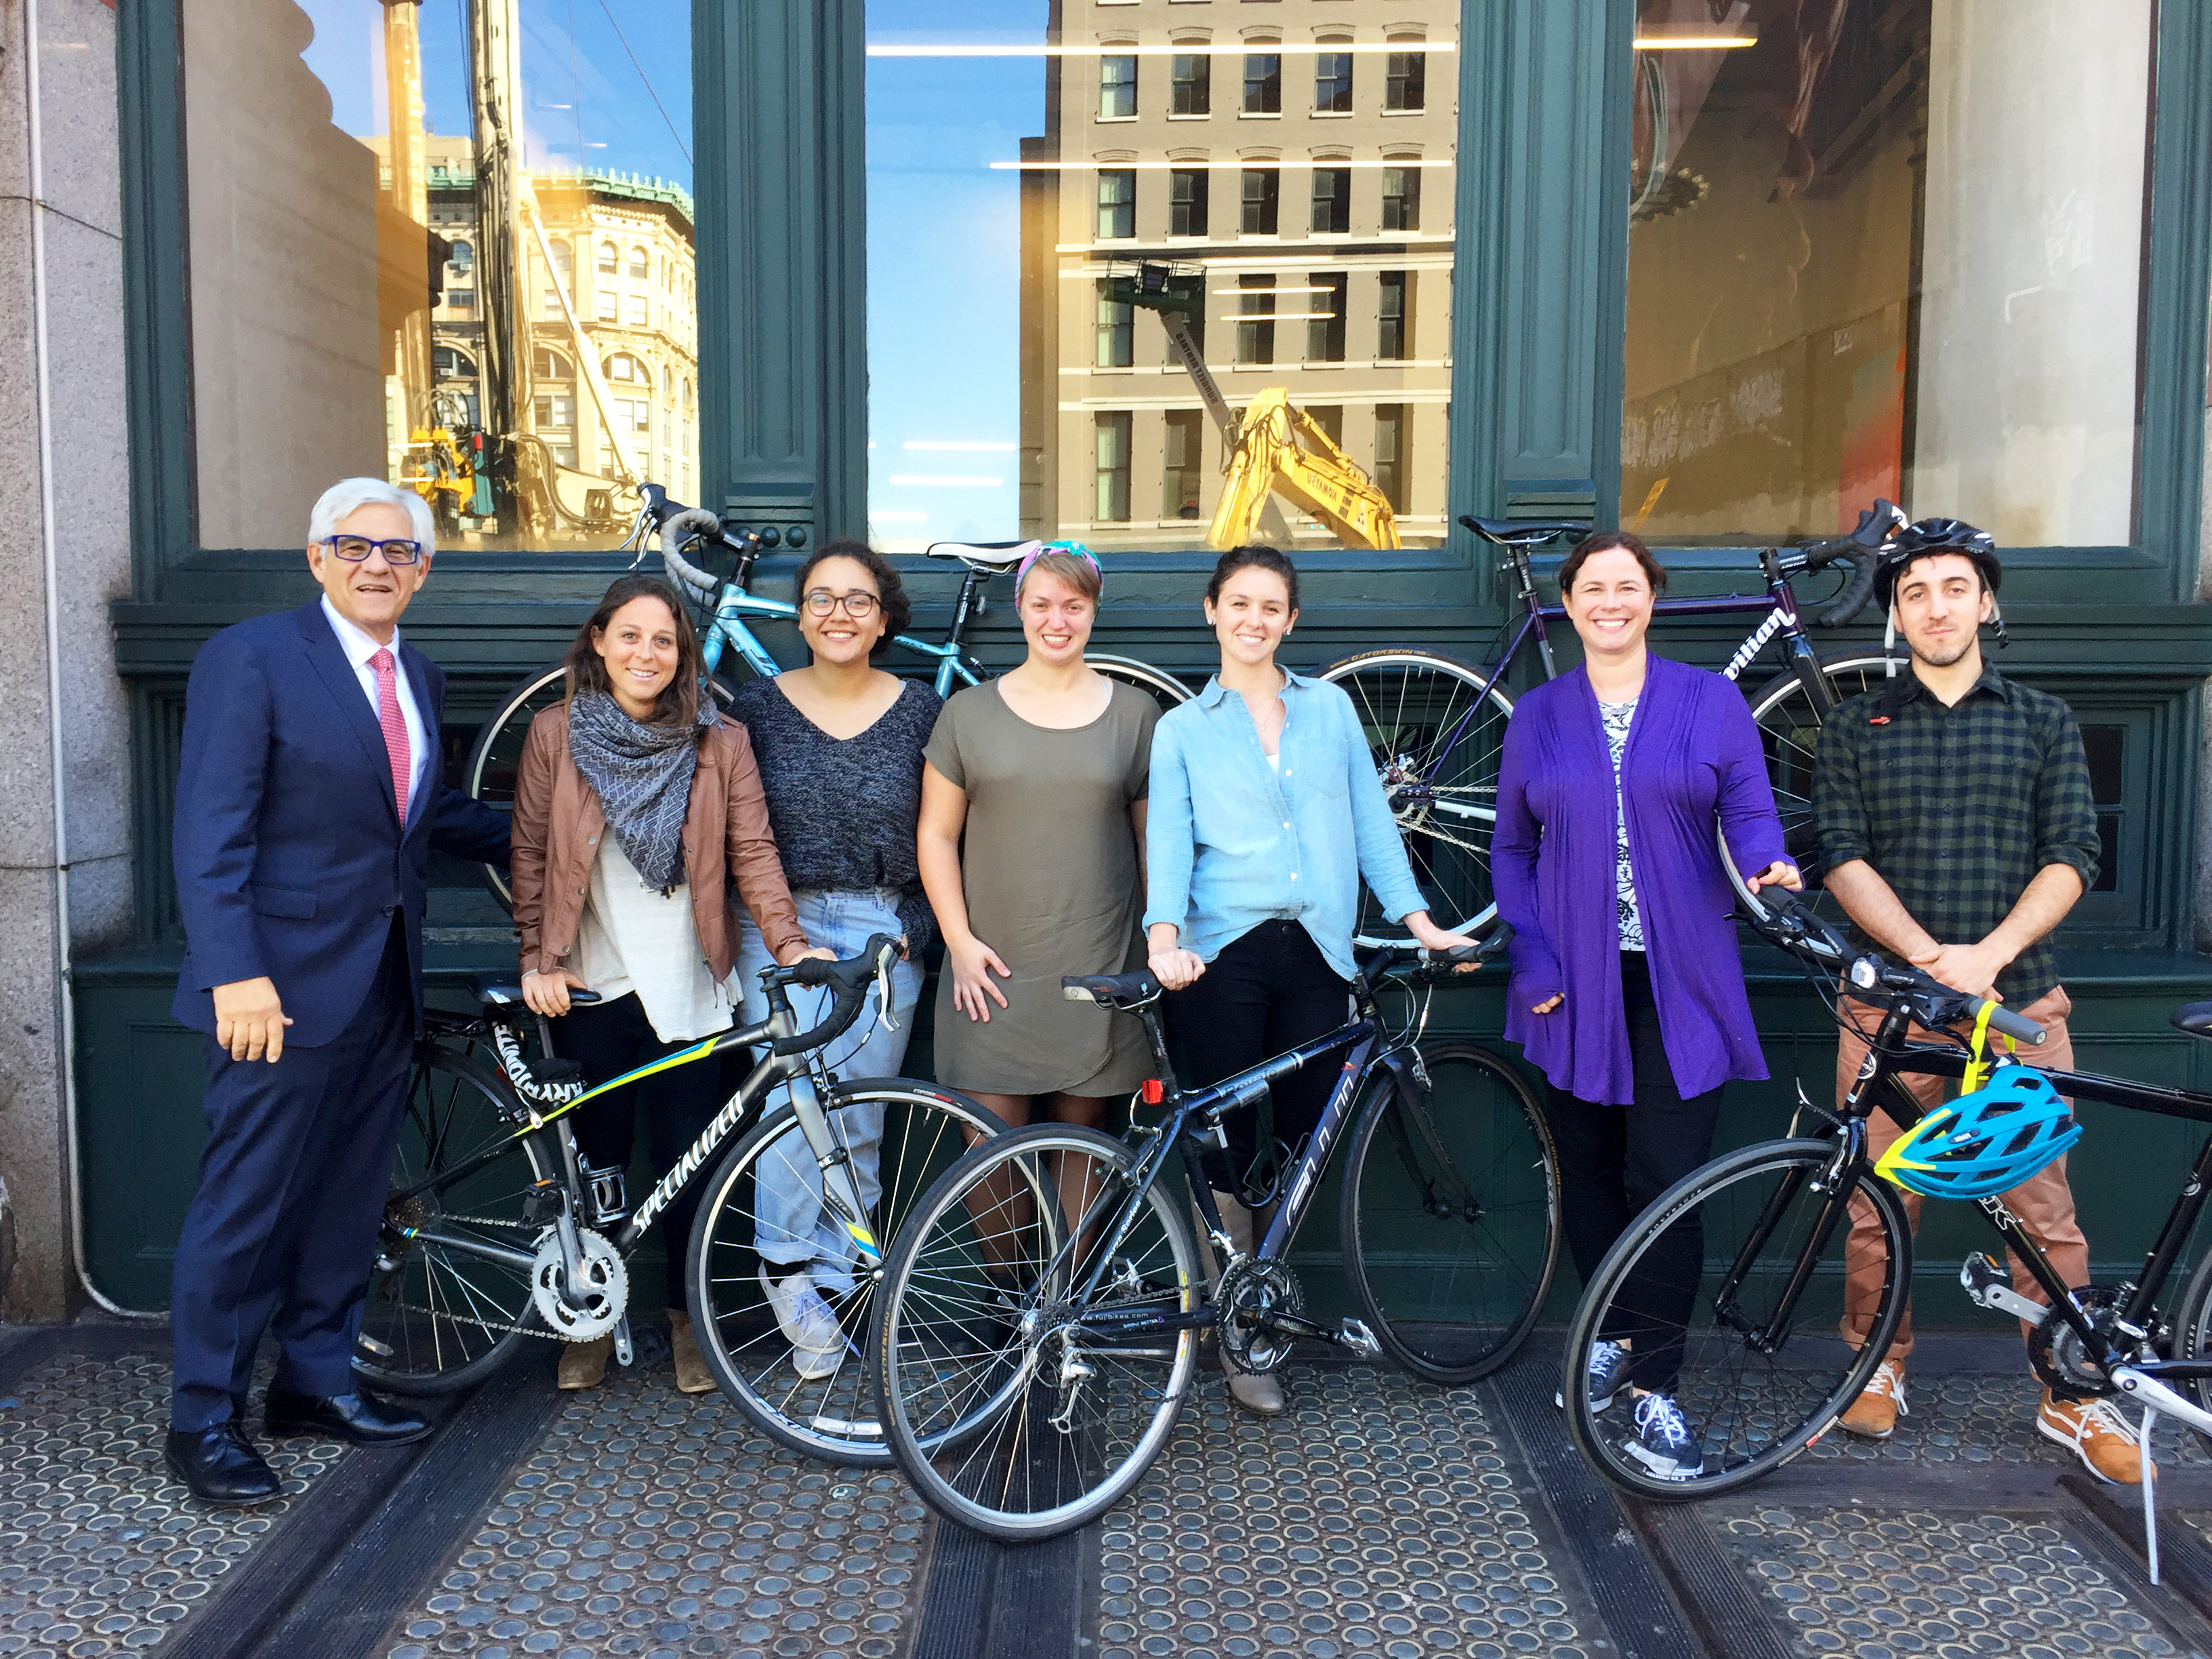 The Cyclists (from left to right): Mitchell Moss, Director, NYU Rudin Center; Joanna Simon, Graduate Researcher; Olivia Craighead, Program Assistant; Ashley Smith, Graduate Researcher; Jenny O'Connell, Graduate Researcher; Sarah Kaufman, Assistant Director; Ari Kaputkin, Graduate Researcher.